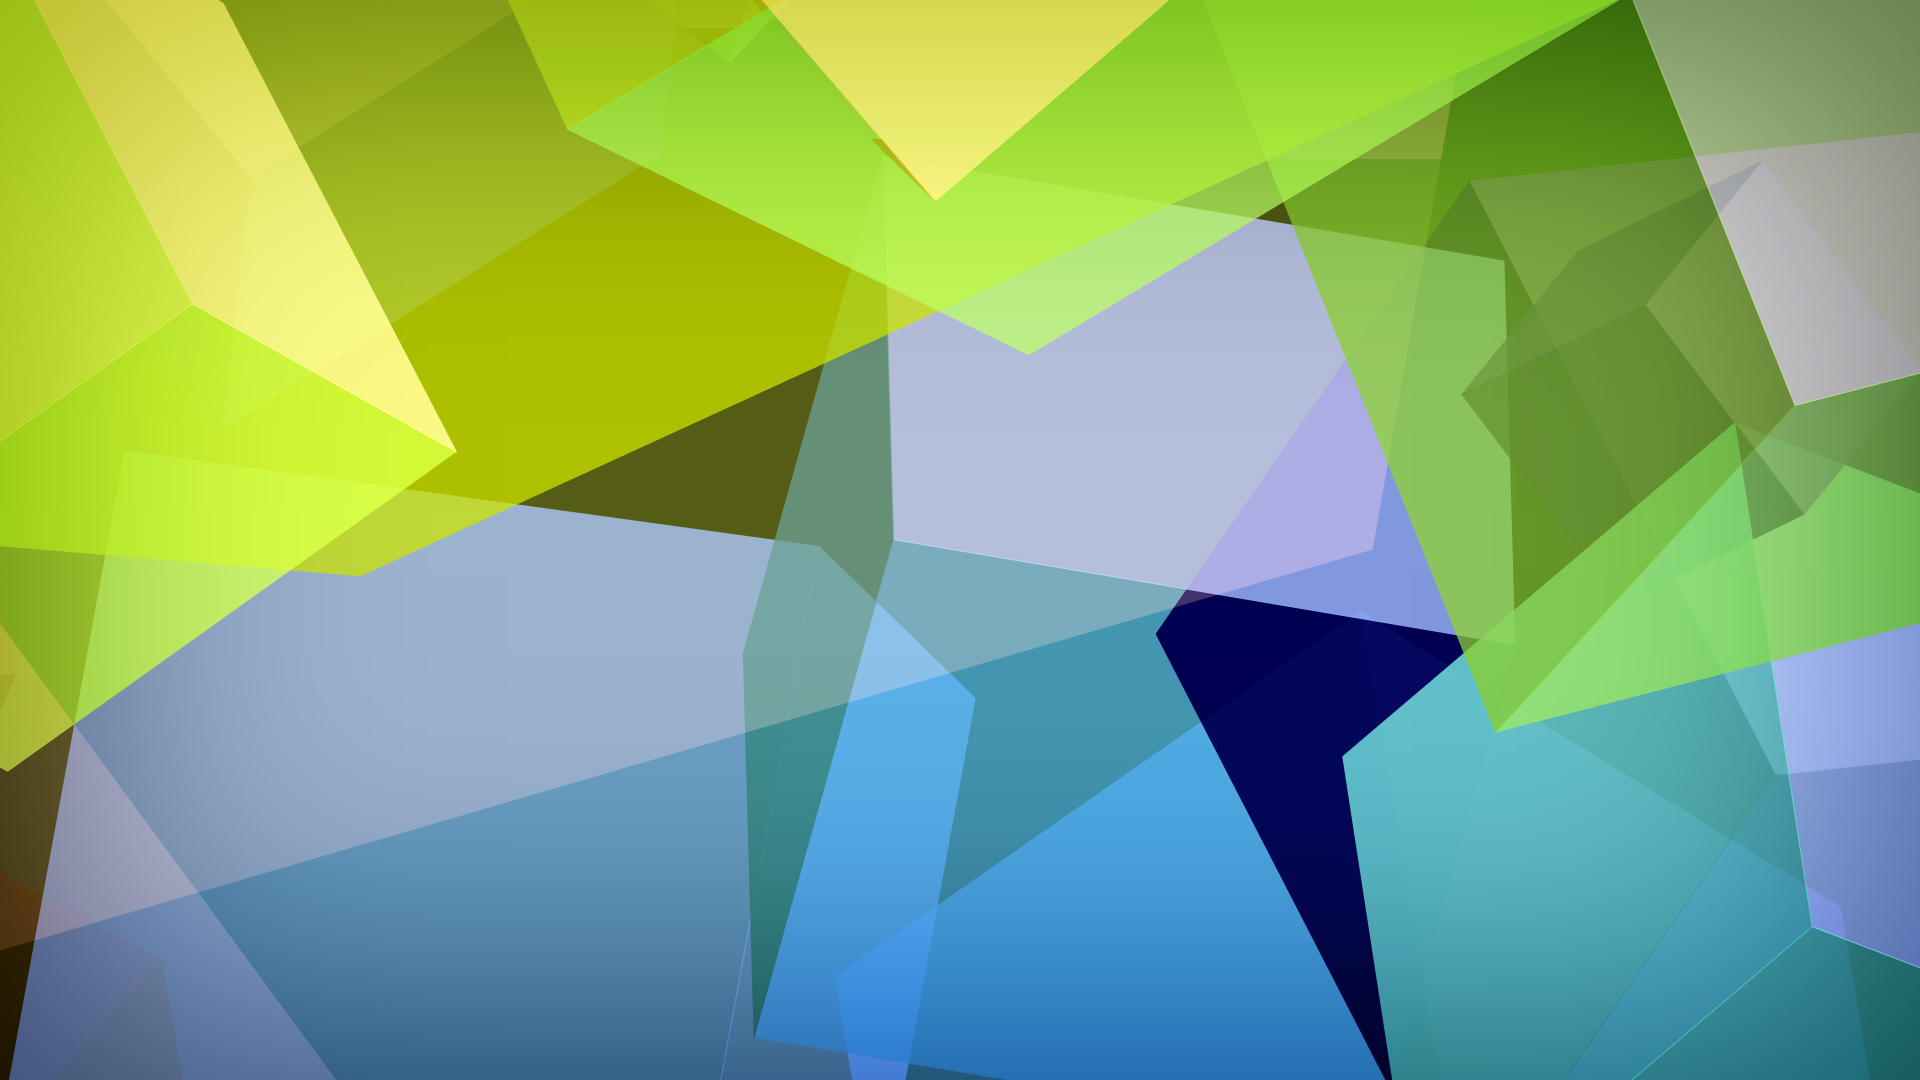 Geometric Shapes Wallpaper - Abstract HD Wallpapers ...